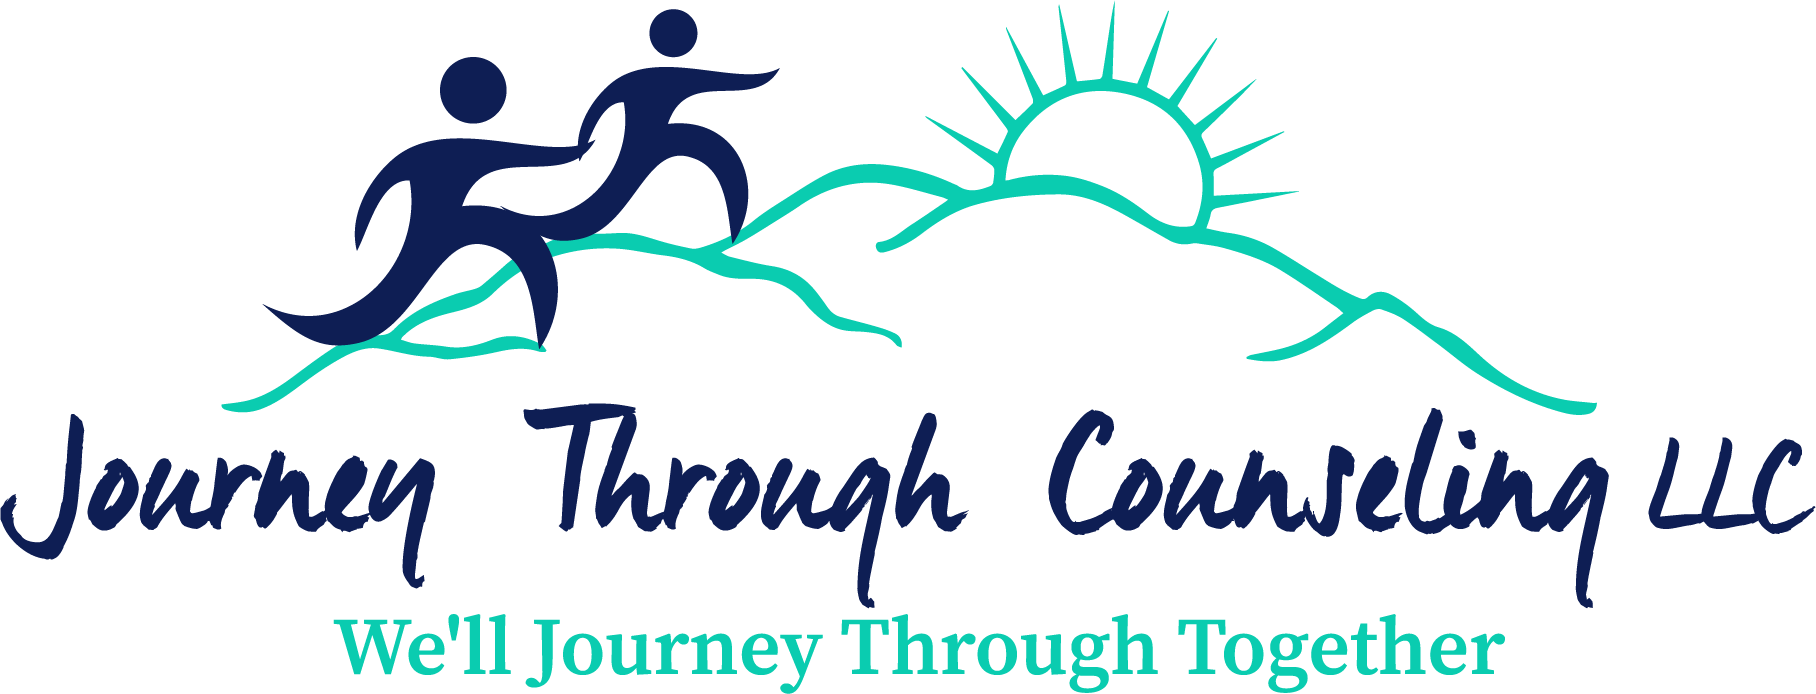 Journey Through Counseling